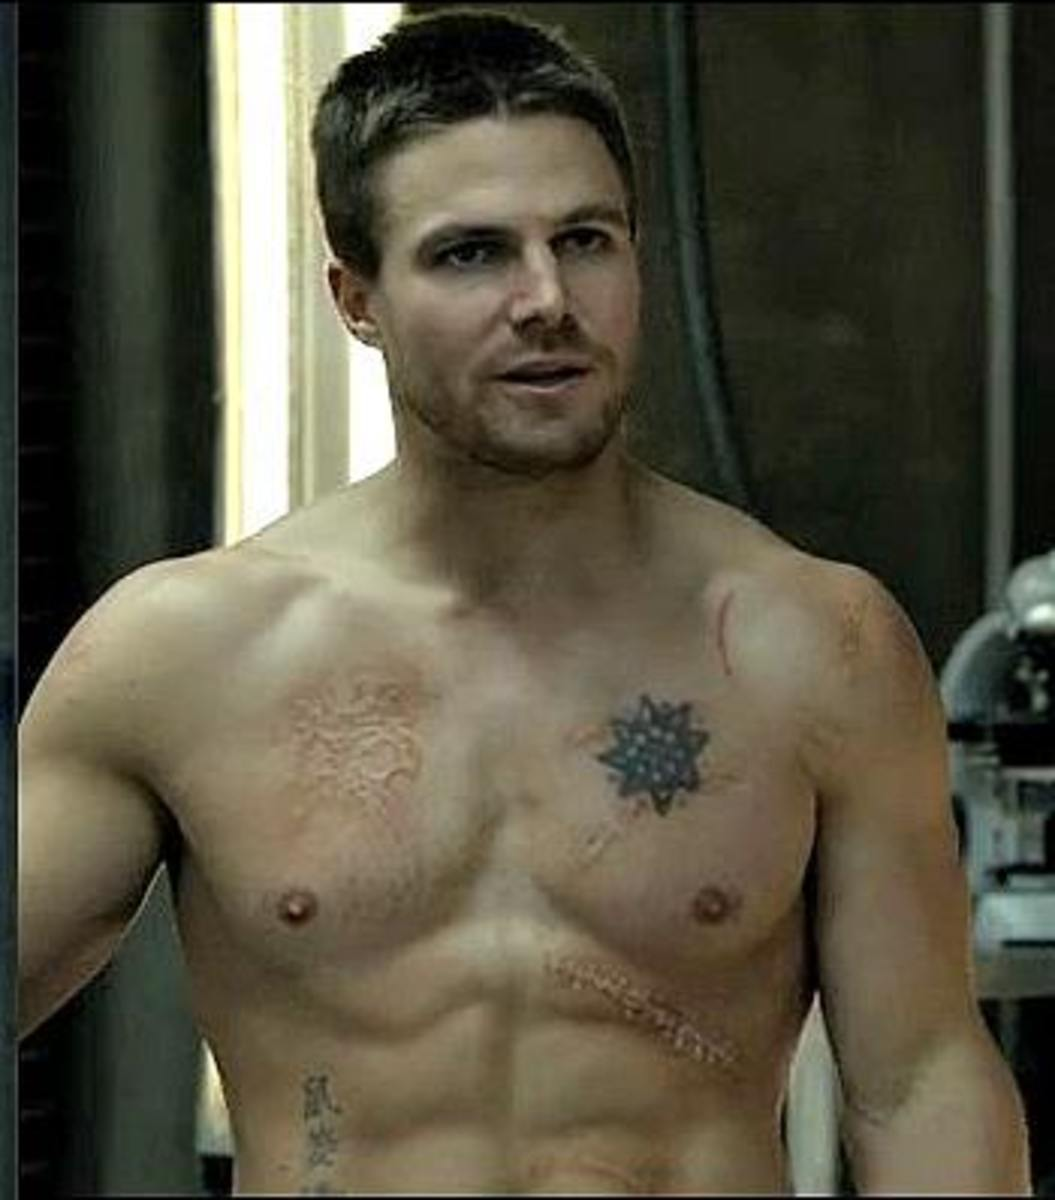 Stephen Amell Workout - Get a Ripped Superhero Body Like the Arrow